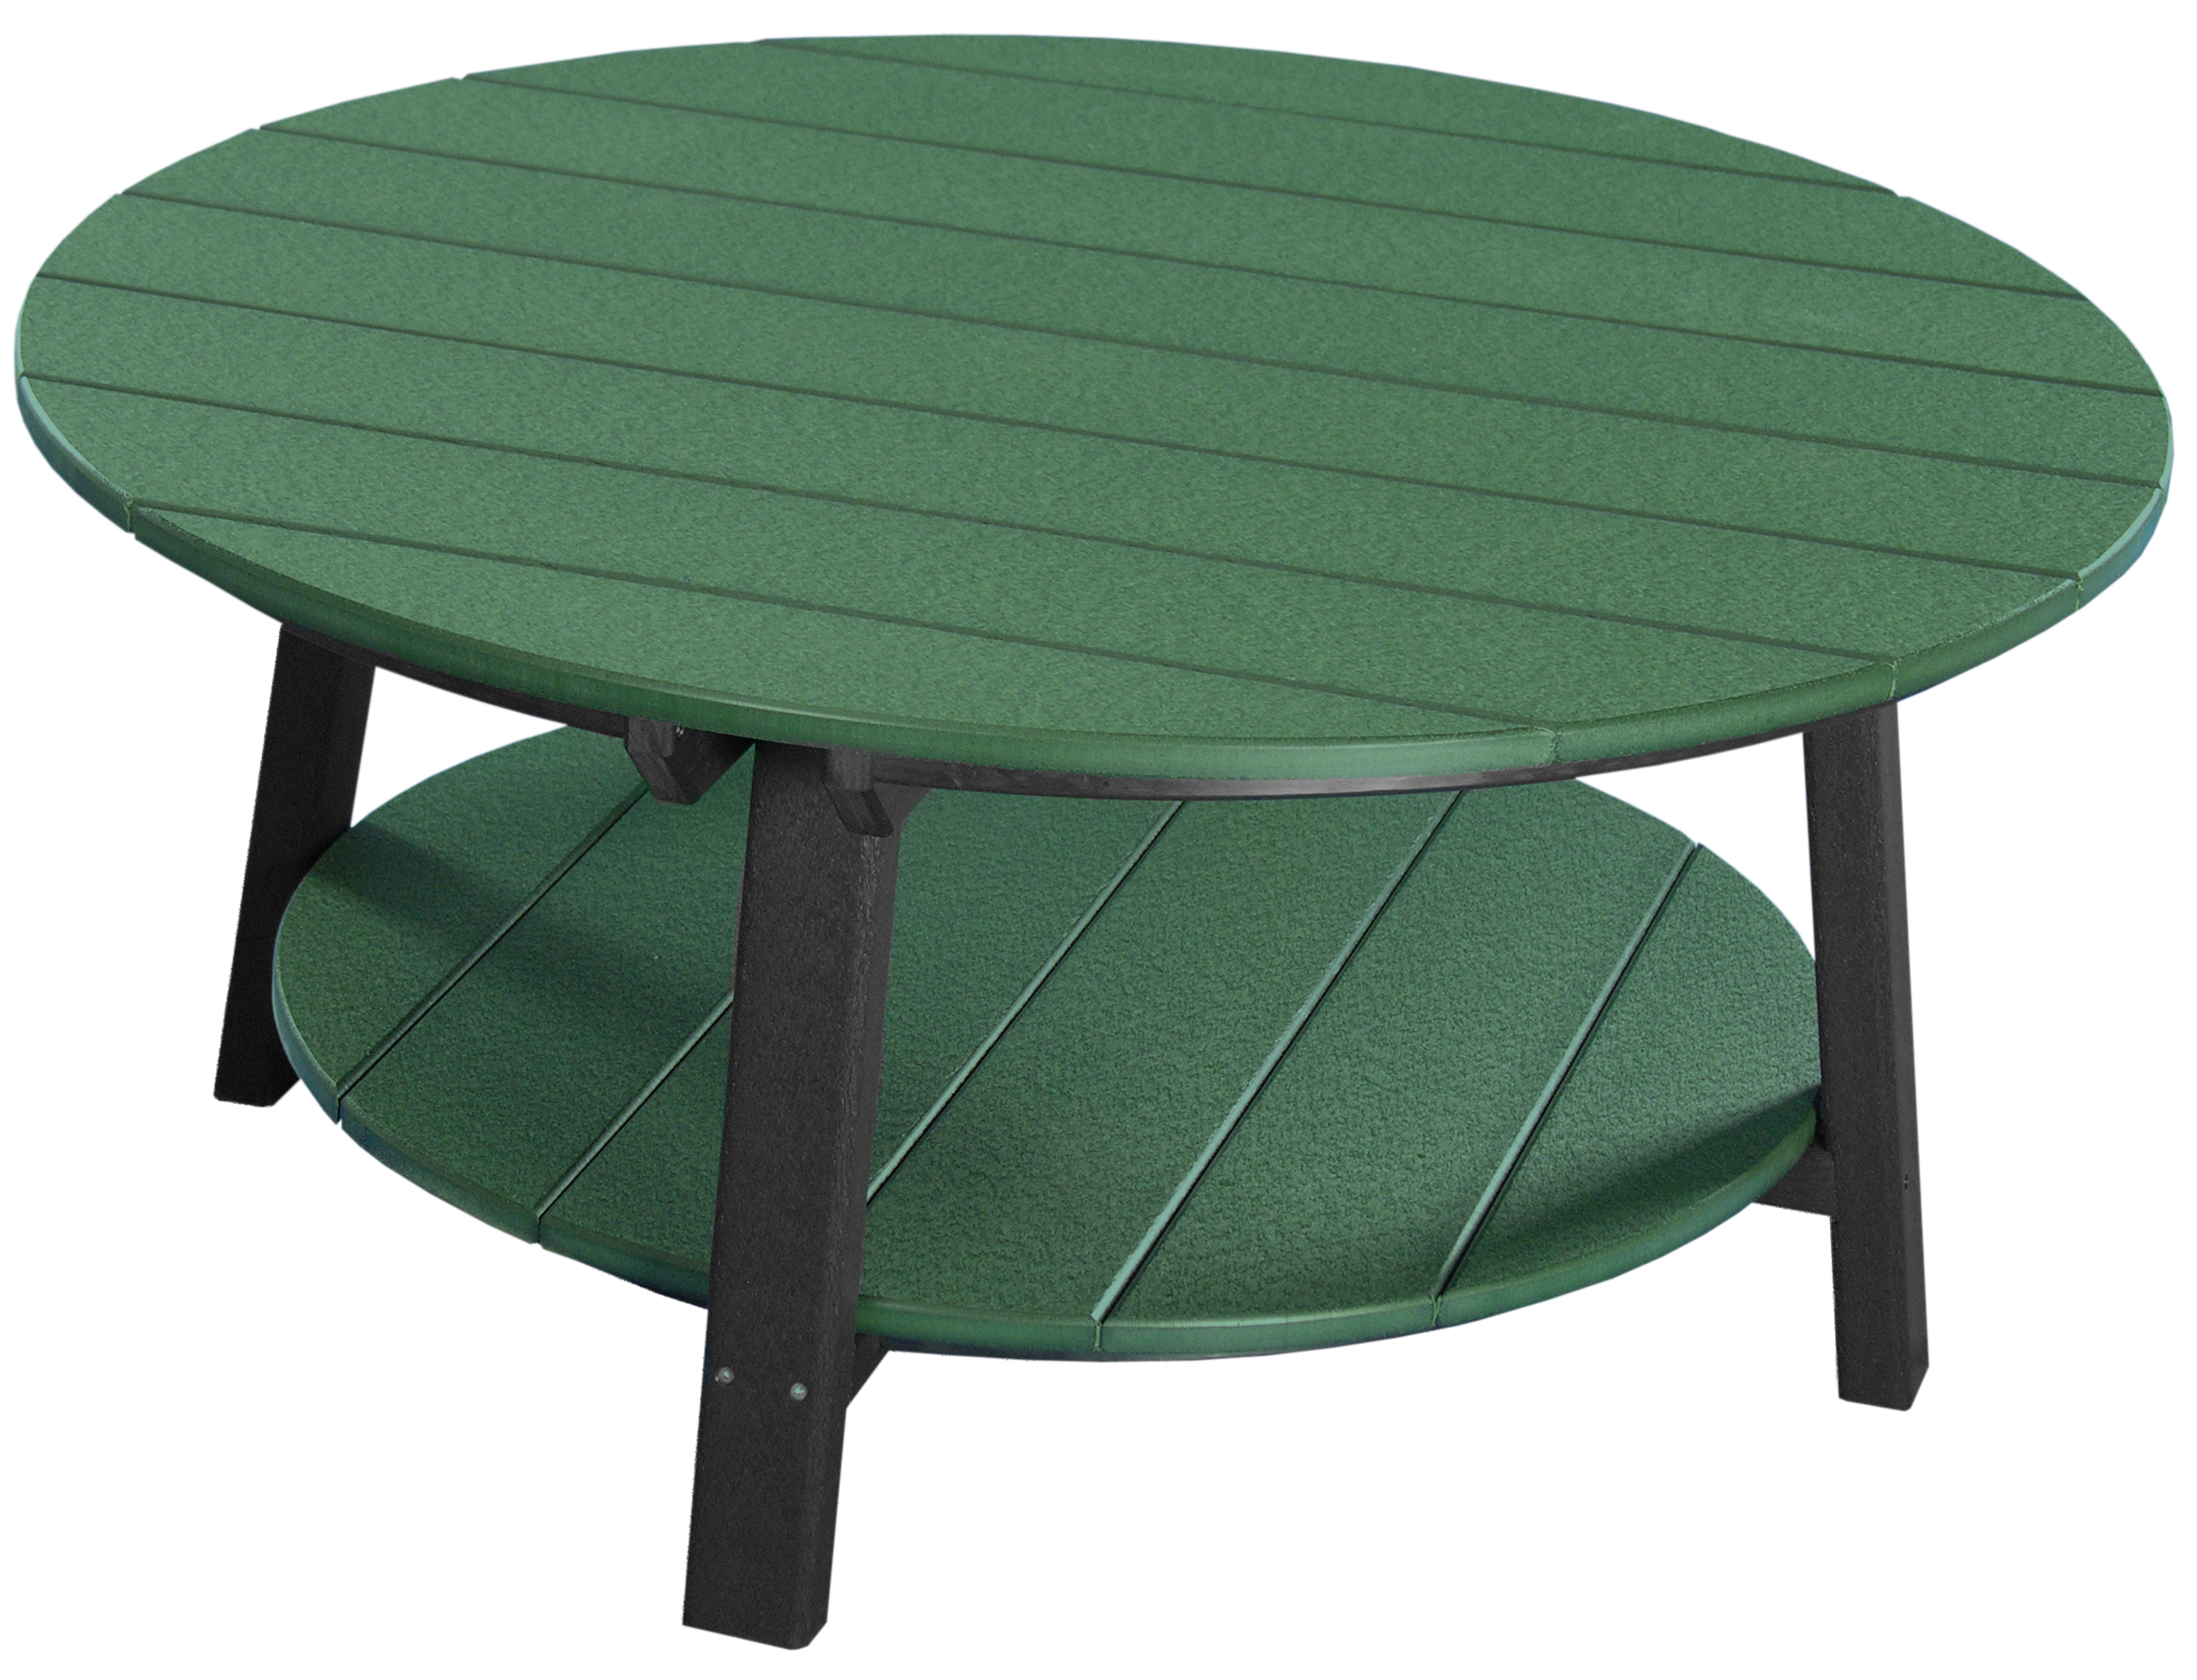 side tables amish merchant deluxe conversation table green outdoor carpet door plates furniture covers narrow night modular bedroom wood farmhouse barn bar inch round holiday